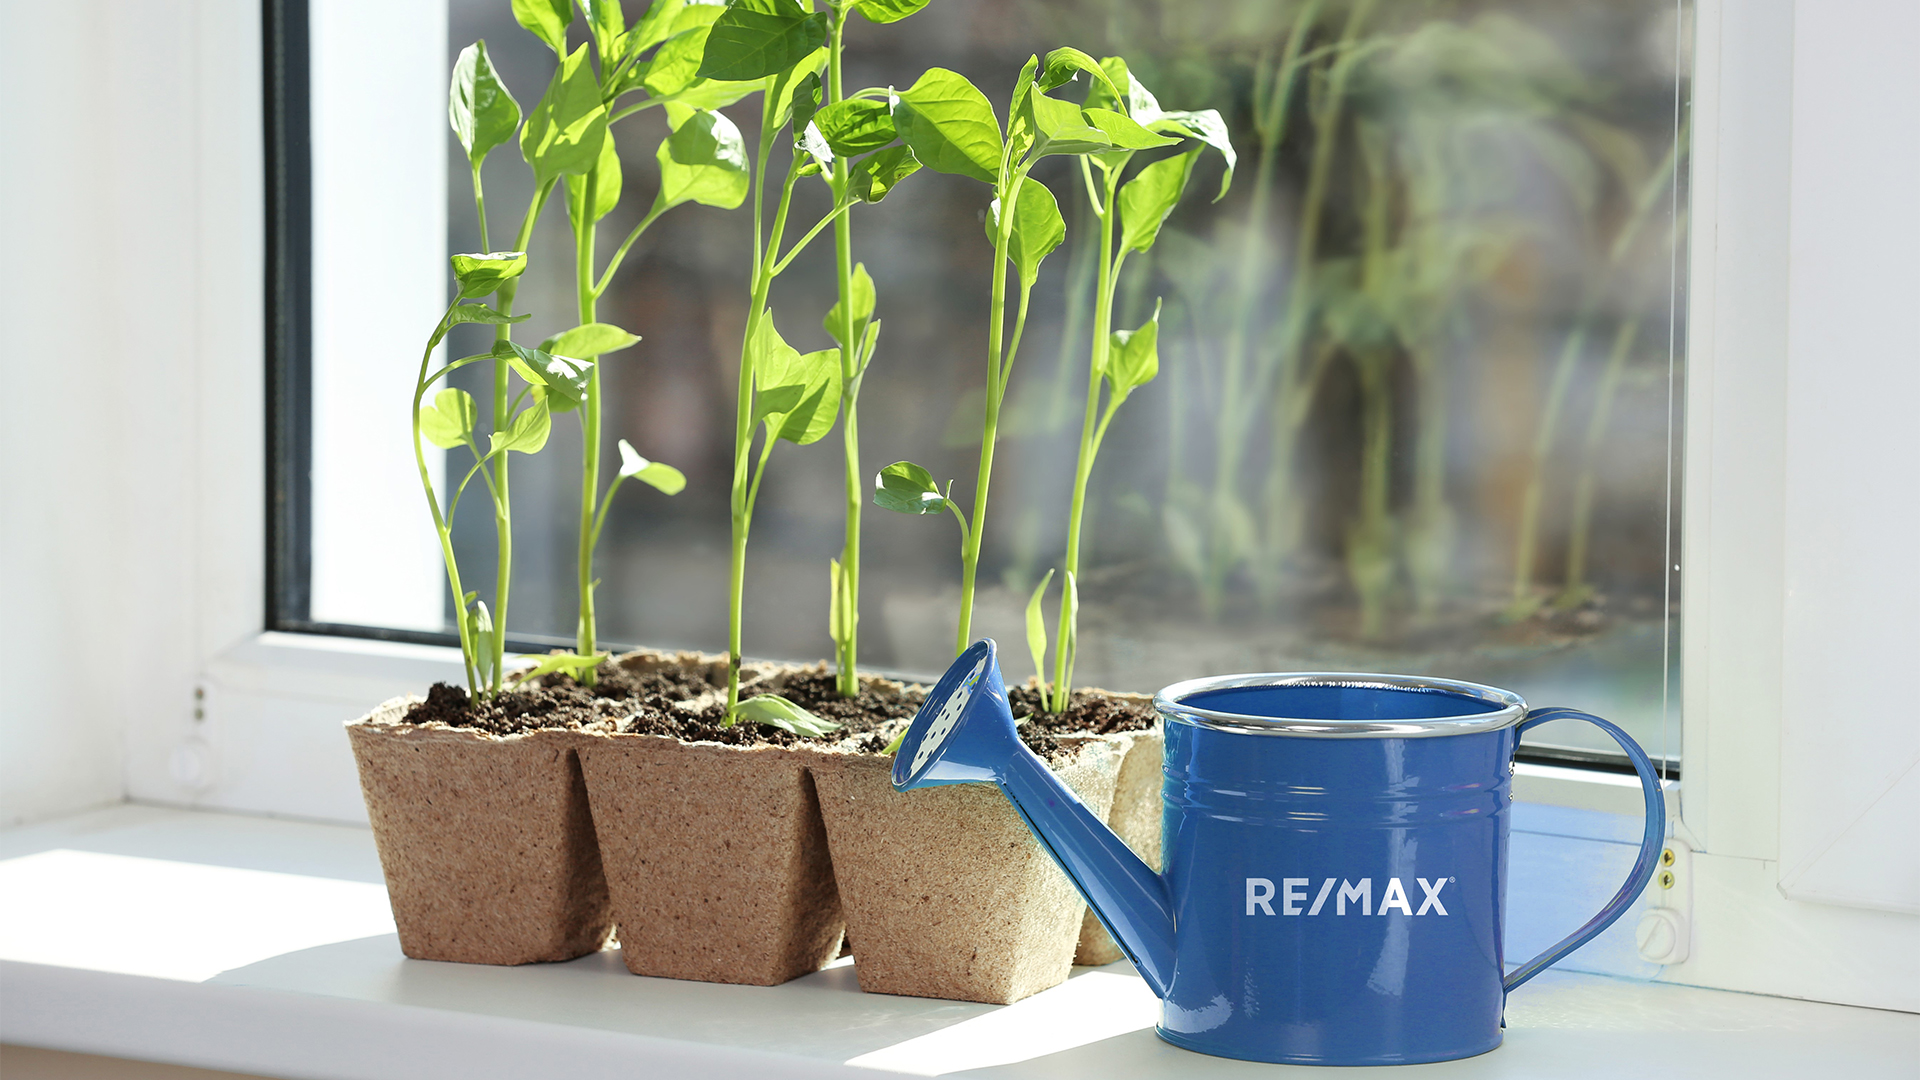 4 TRICKS TO GROWING VEGGIE GARDENS IN AN APARTMENT